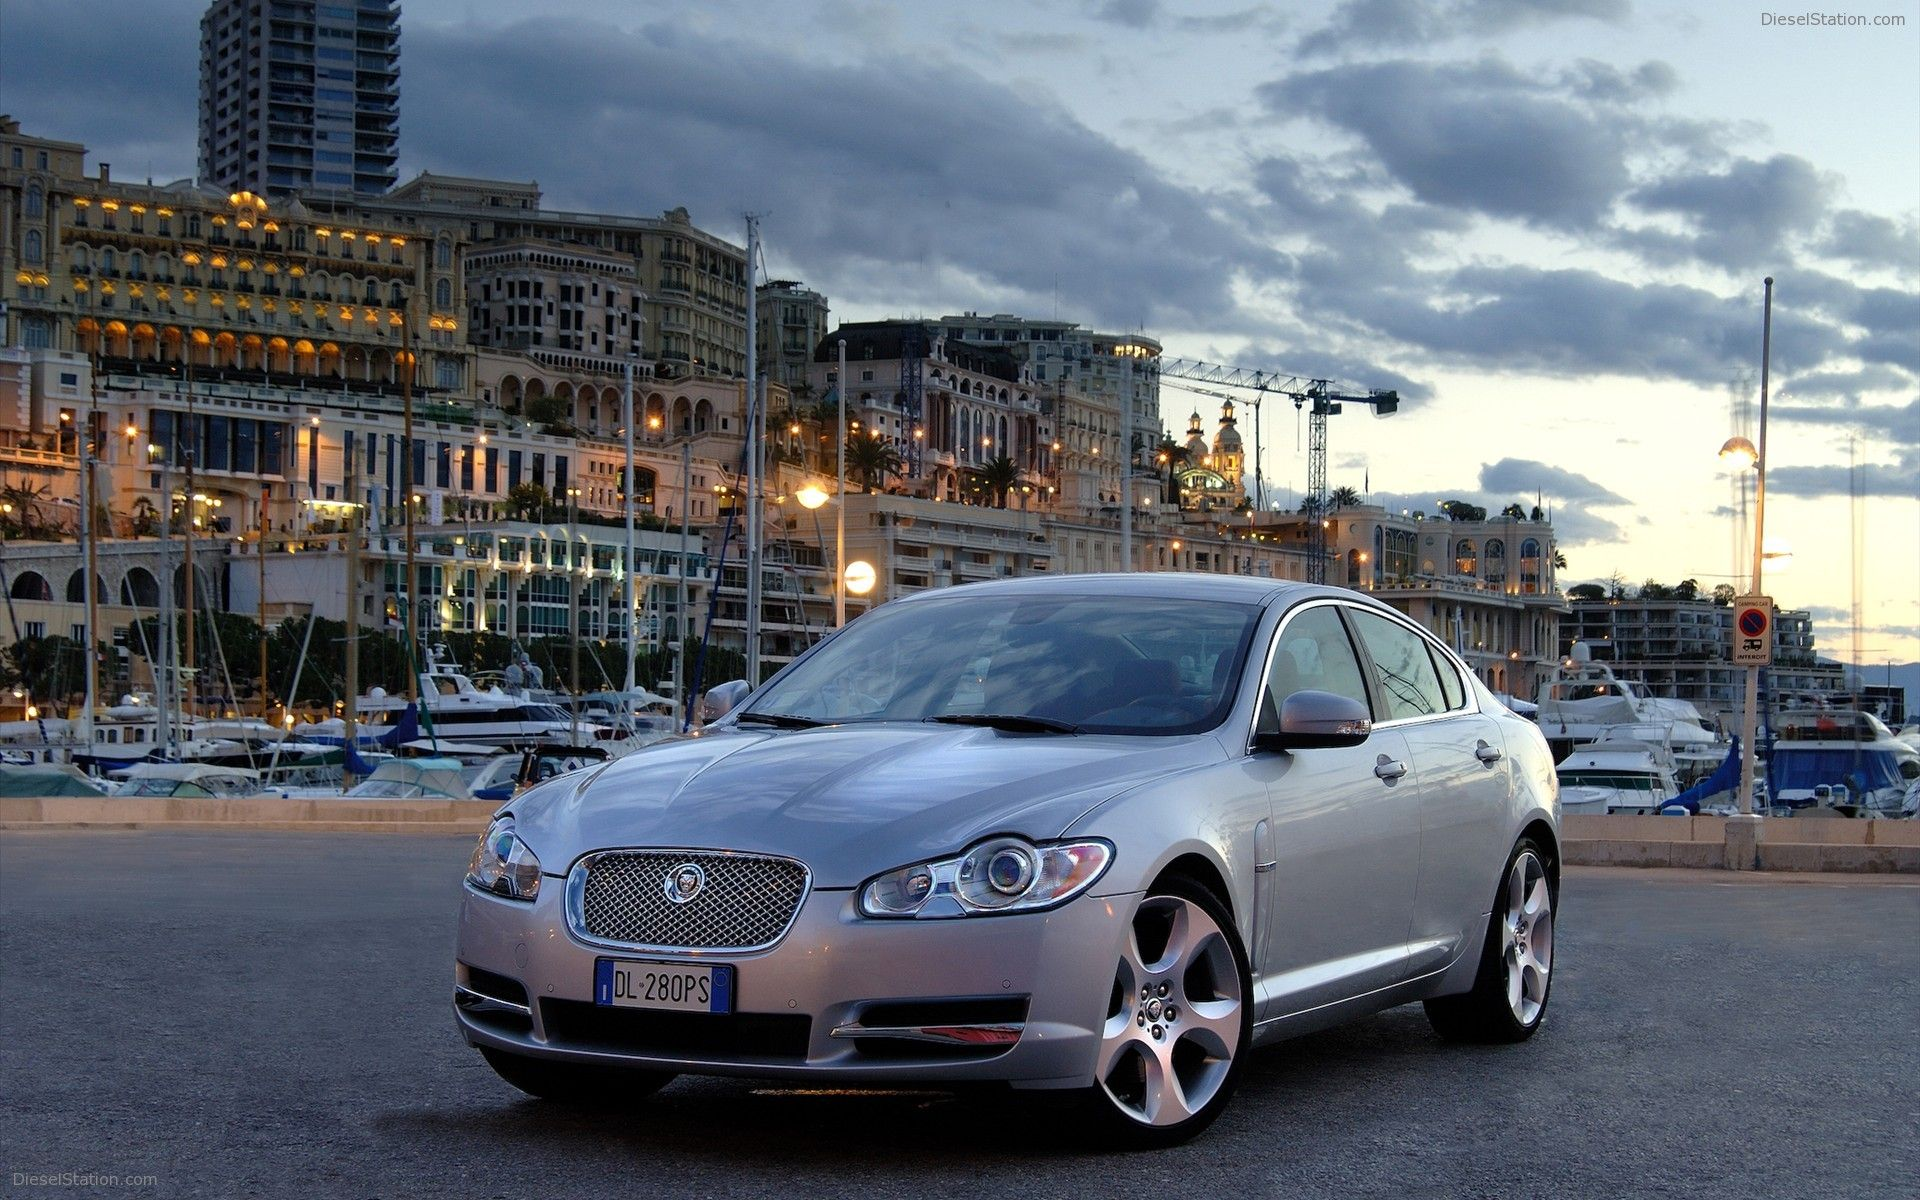 Jaguar XF Widescreen Exotic Car Wallpapers Of Diesel